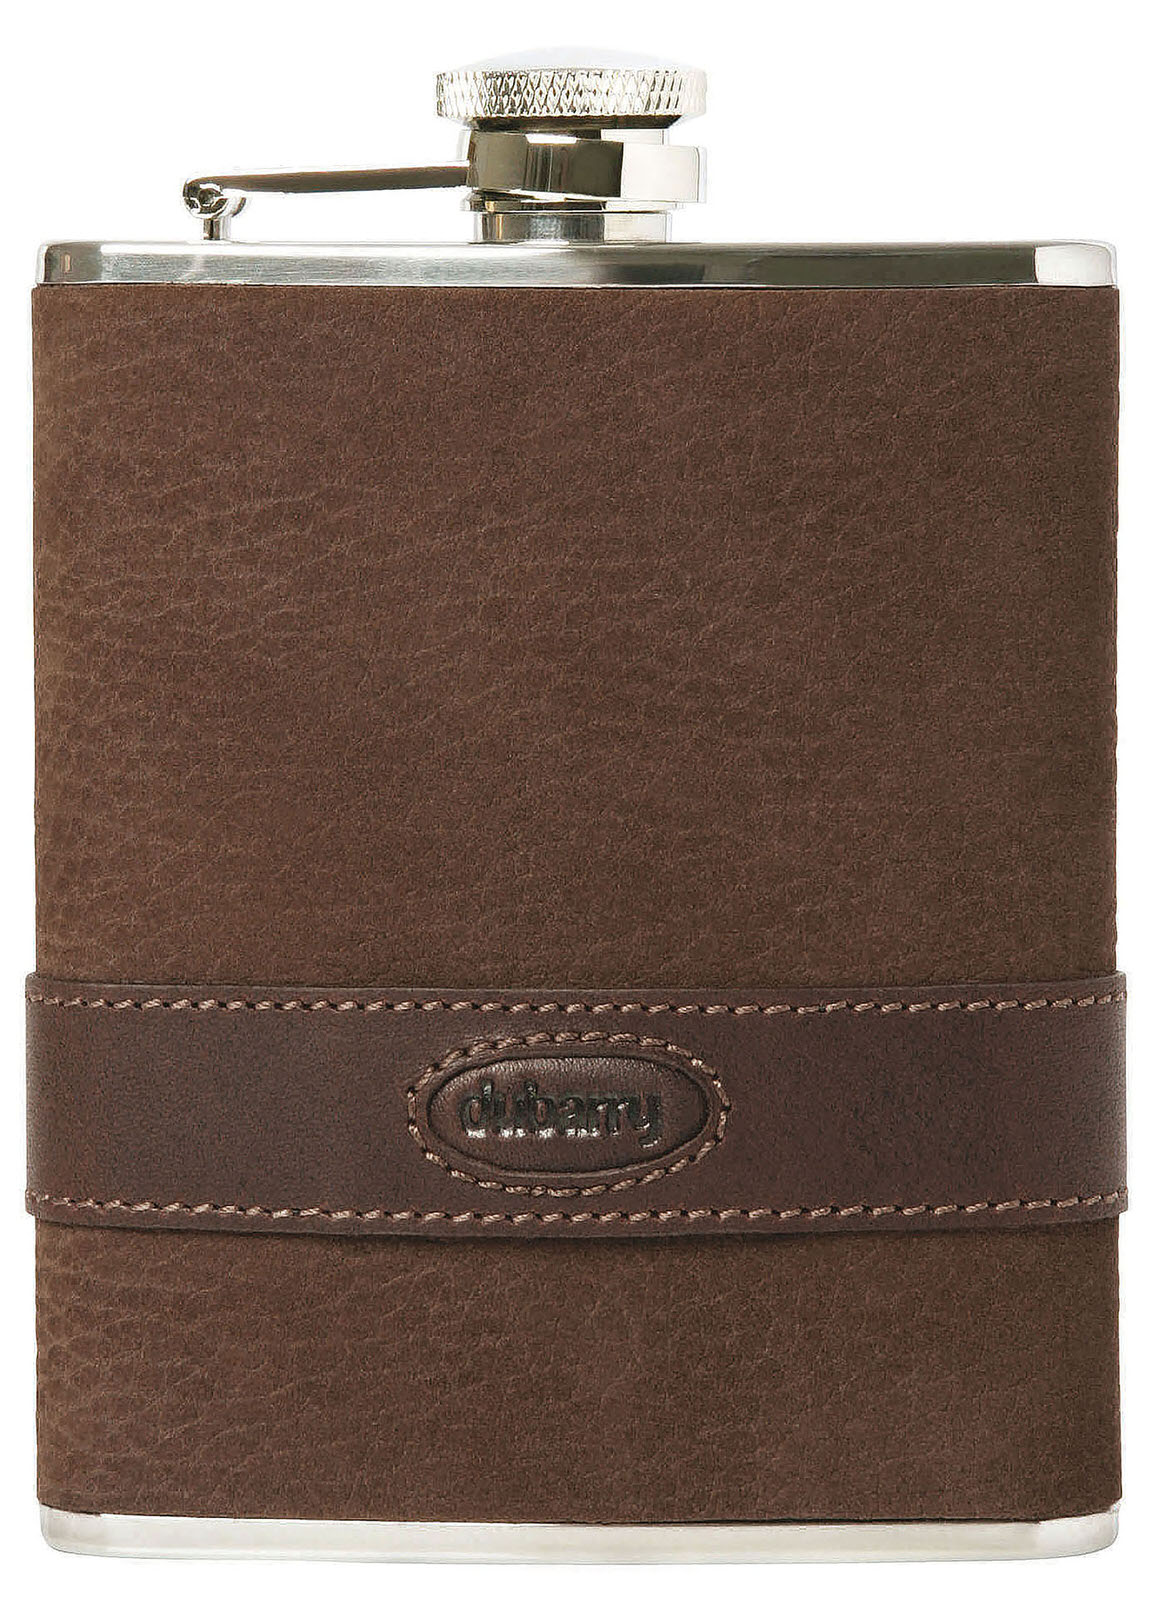 Rugby_Hipflask_Walnut_Image_1